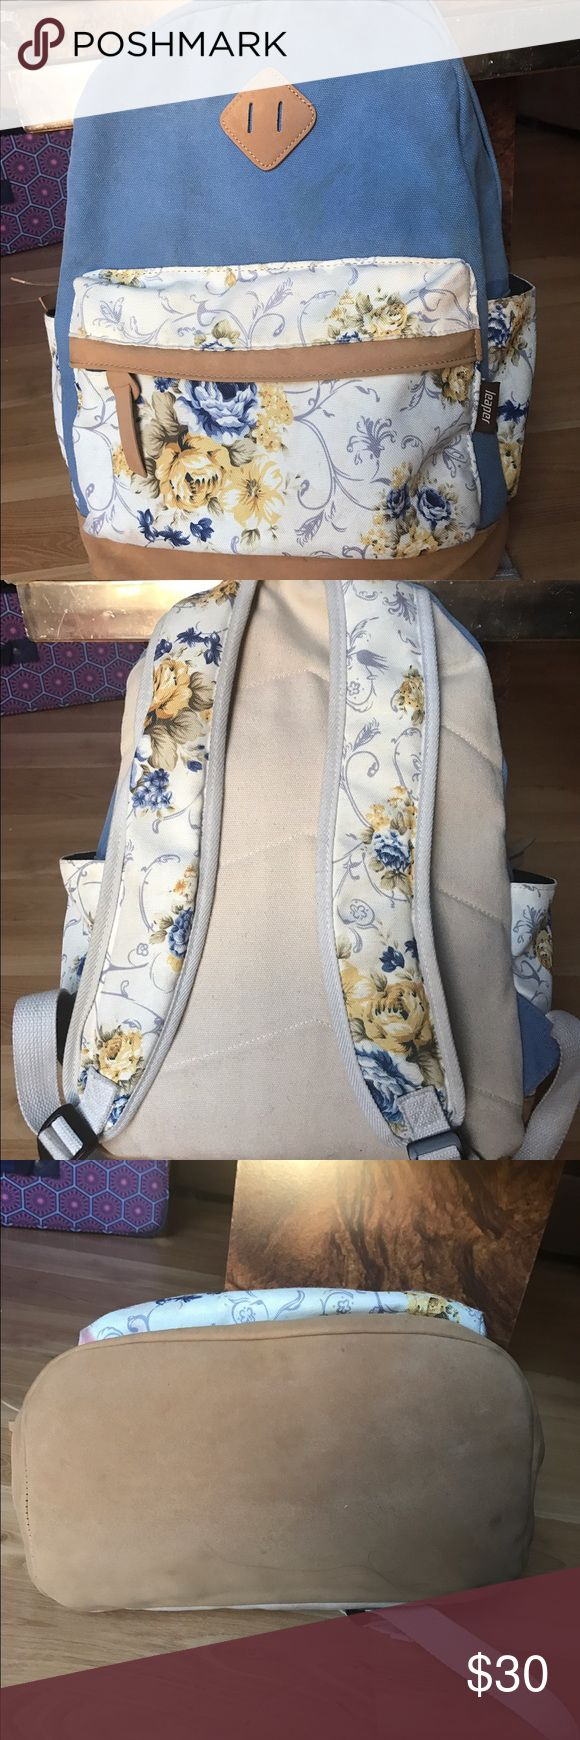 """Floral  blue leather cloth backpack  Excellent used condition! Used for one season, no rips, tears or stains. Ask any questions and bundle for 30%! Brand is Leaper- Herschel for visibility! dimensions are 12*17.1*6.7in (L*H*W); Laptop compartment dimensions: 9.4*9.7*1.45 (L*H*W). fit laptops below 14"""" easily. made of high quality canvas, with two side pockets and one front zipper pocket. Herschel Supply Company Bags Backpacks"""